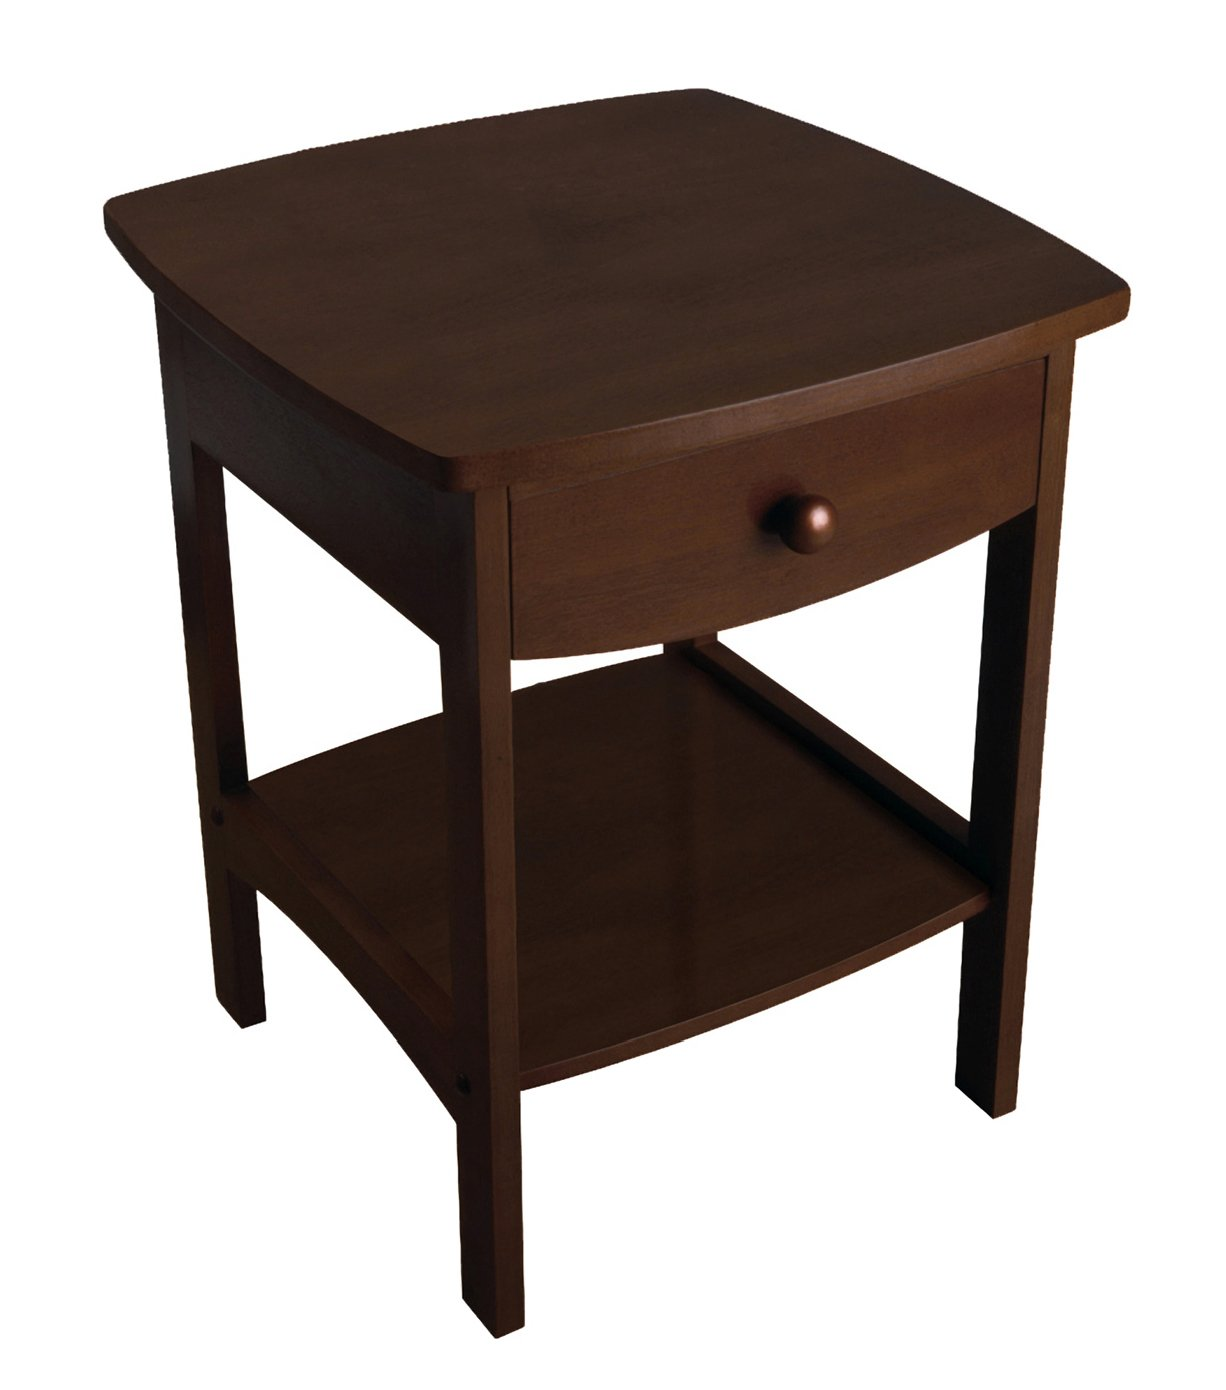 winsome wood claire accent table walnut kitchen dark brown dining corner umbrella coffee sets inch legs mosaic tile outdoor patio clearance pottery barn room hobby lobby lamps